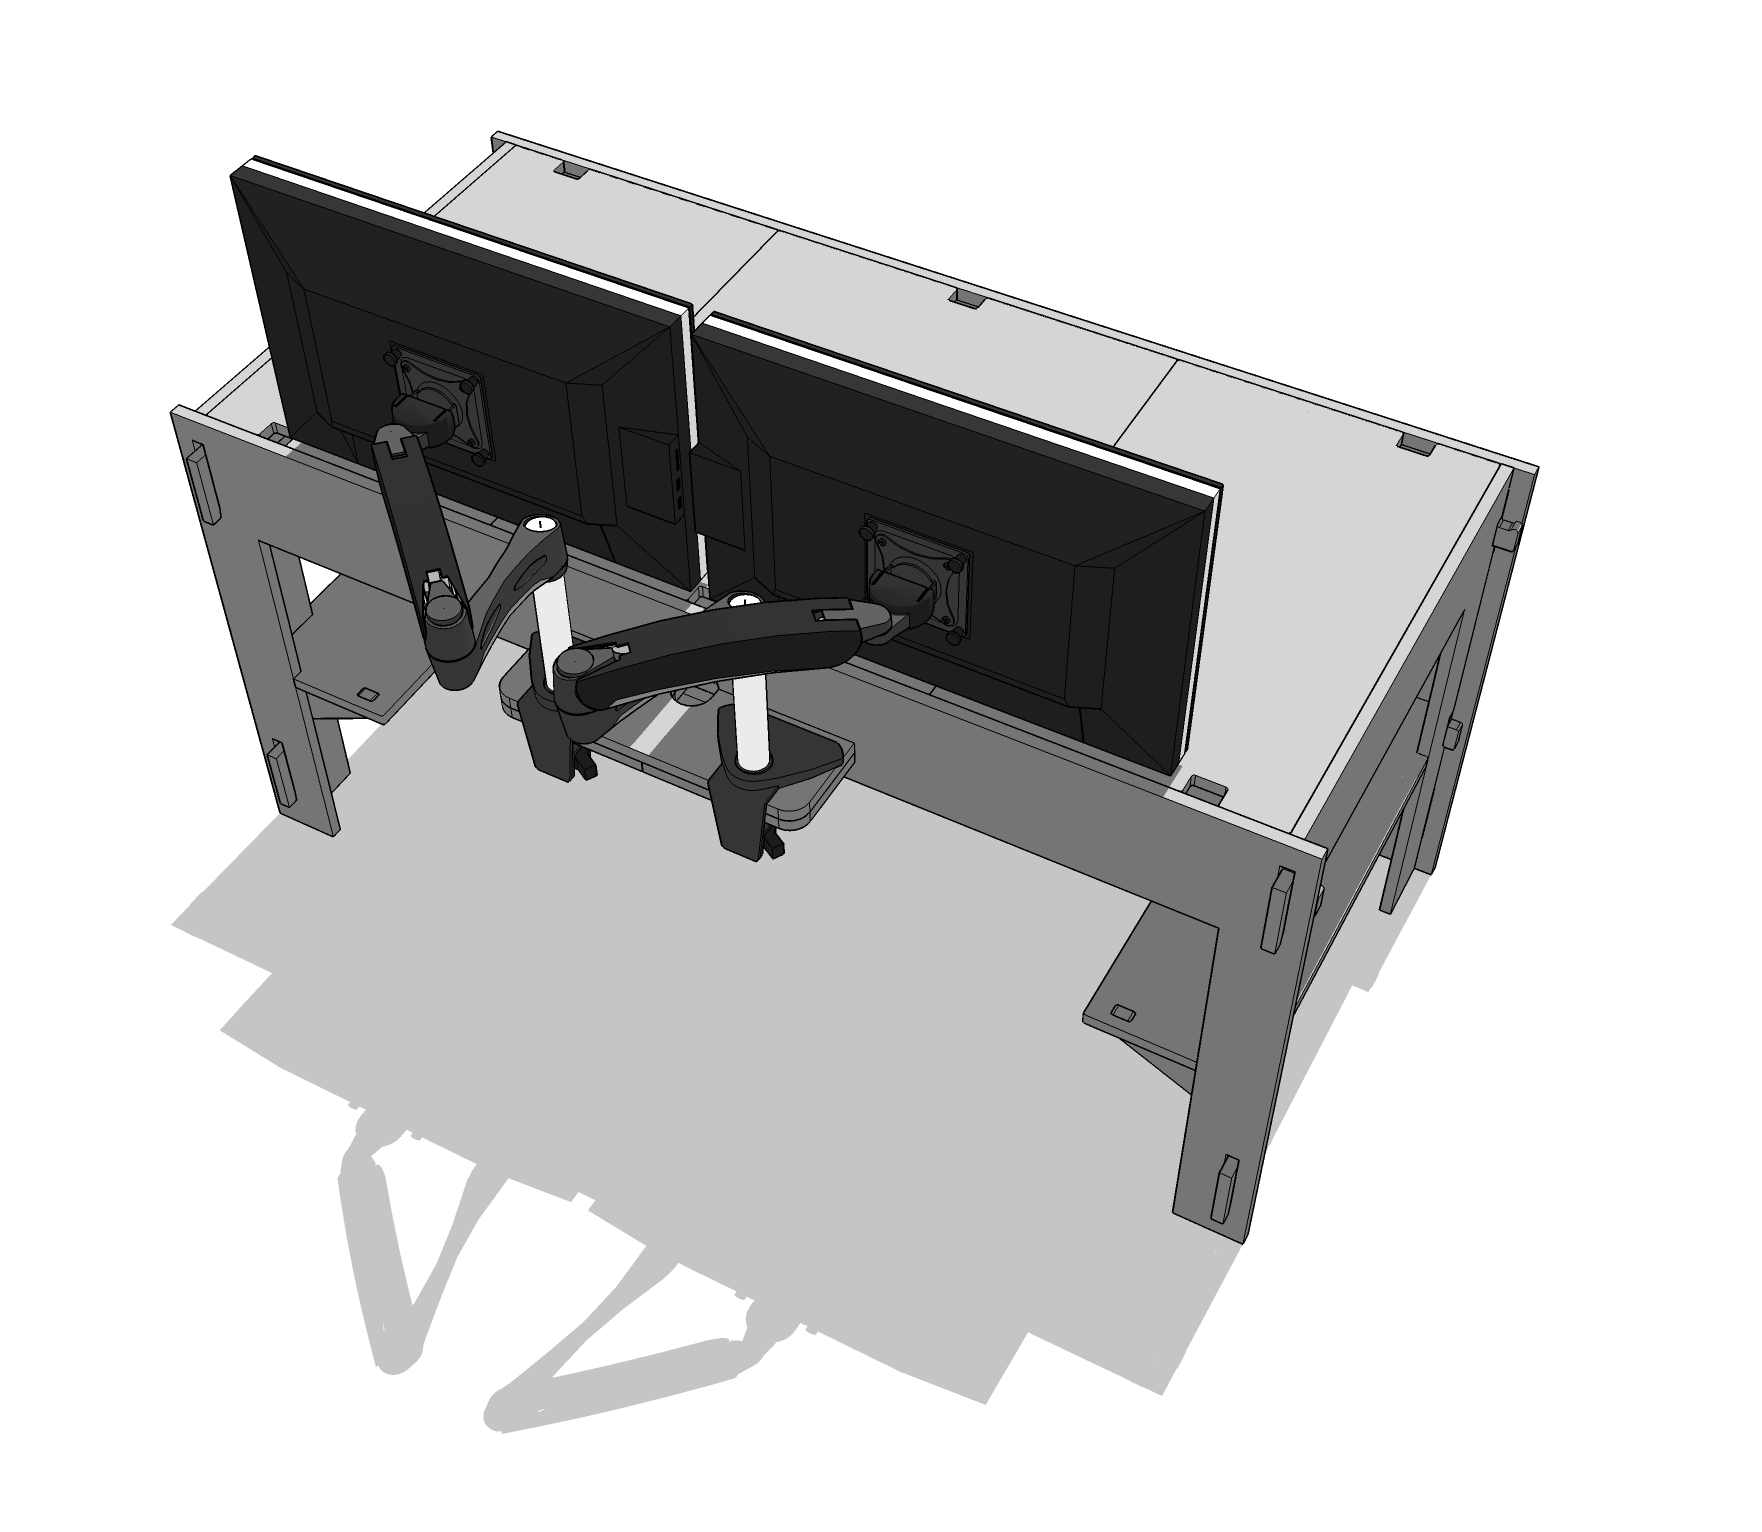 Design sketch showing the attachment of two articulated monitor arms